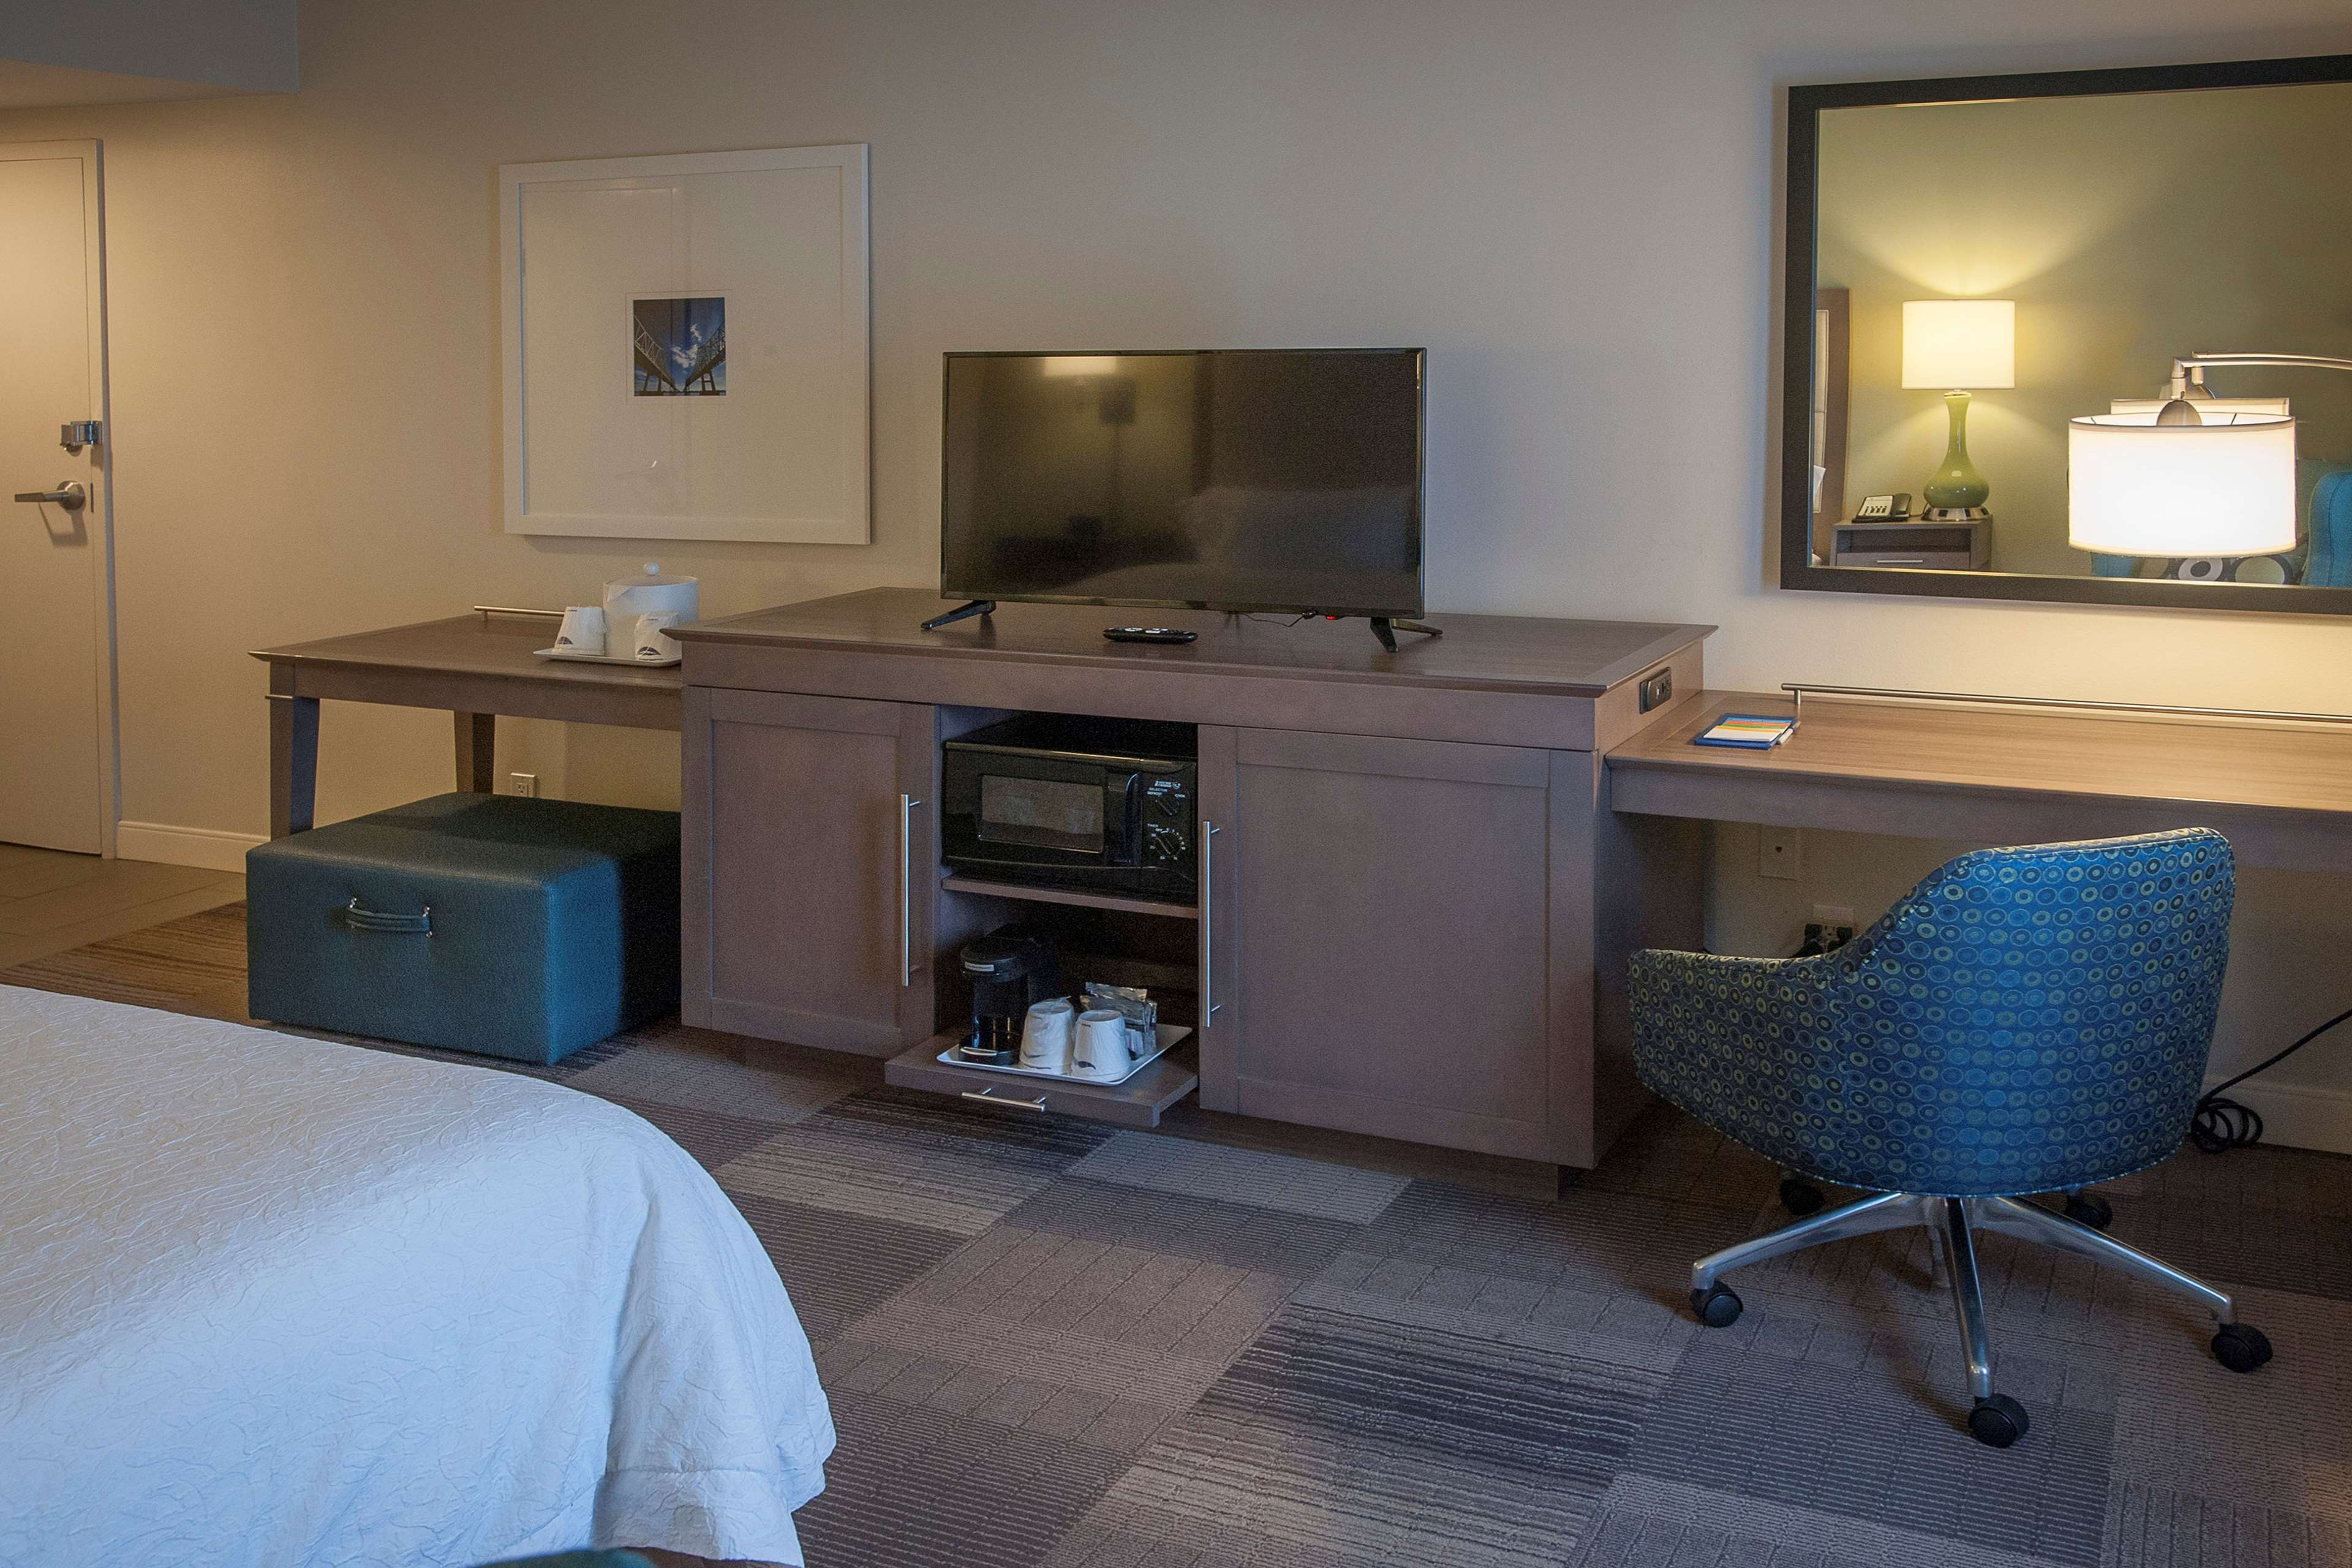 Hampton Inn & Suites New Orleans-Elmwood/Clearview Parkway Area image 30